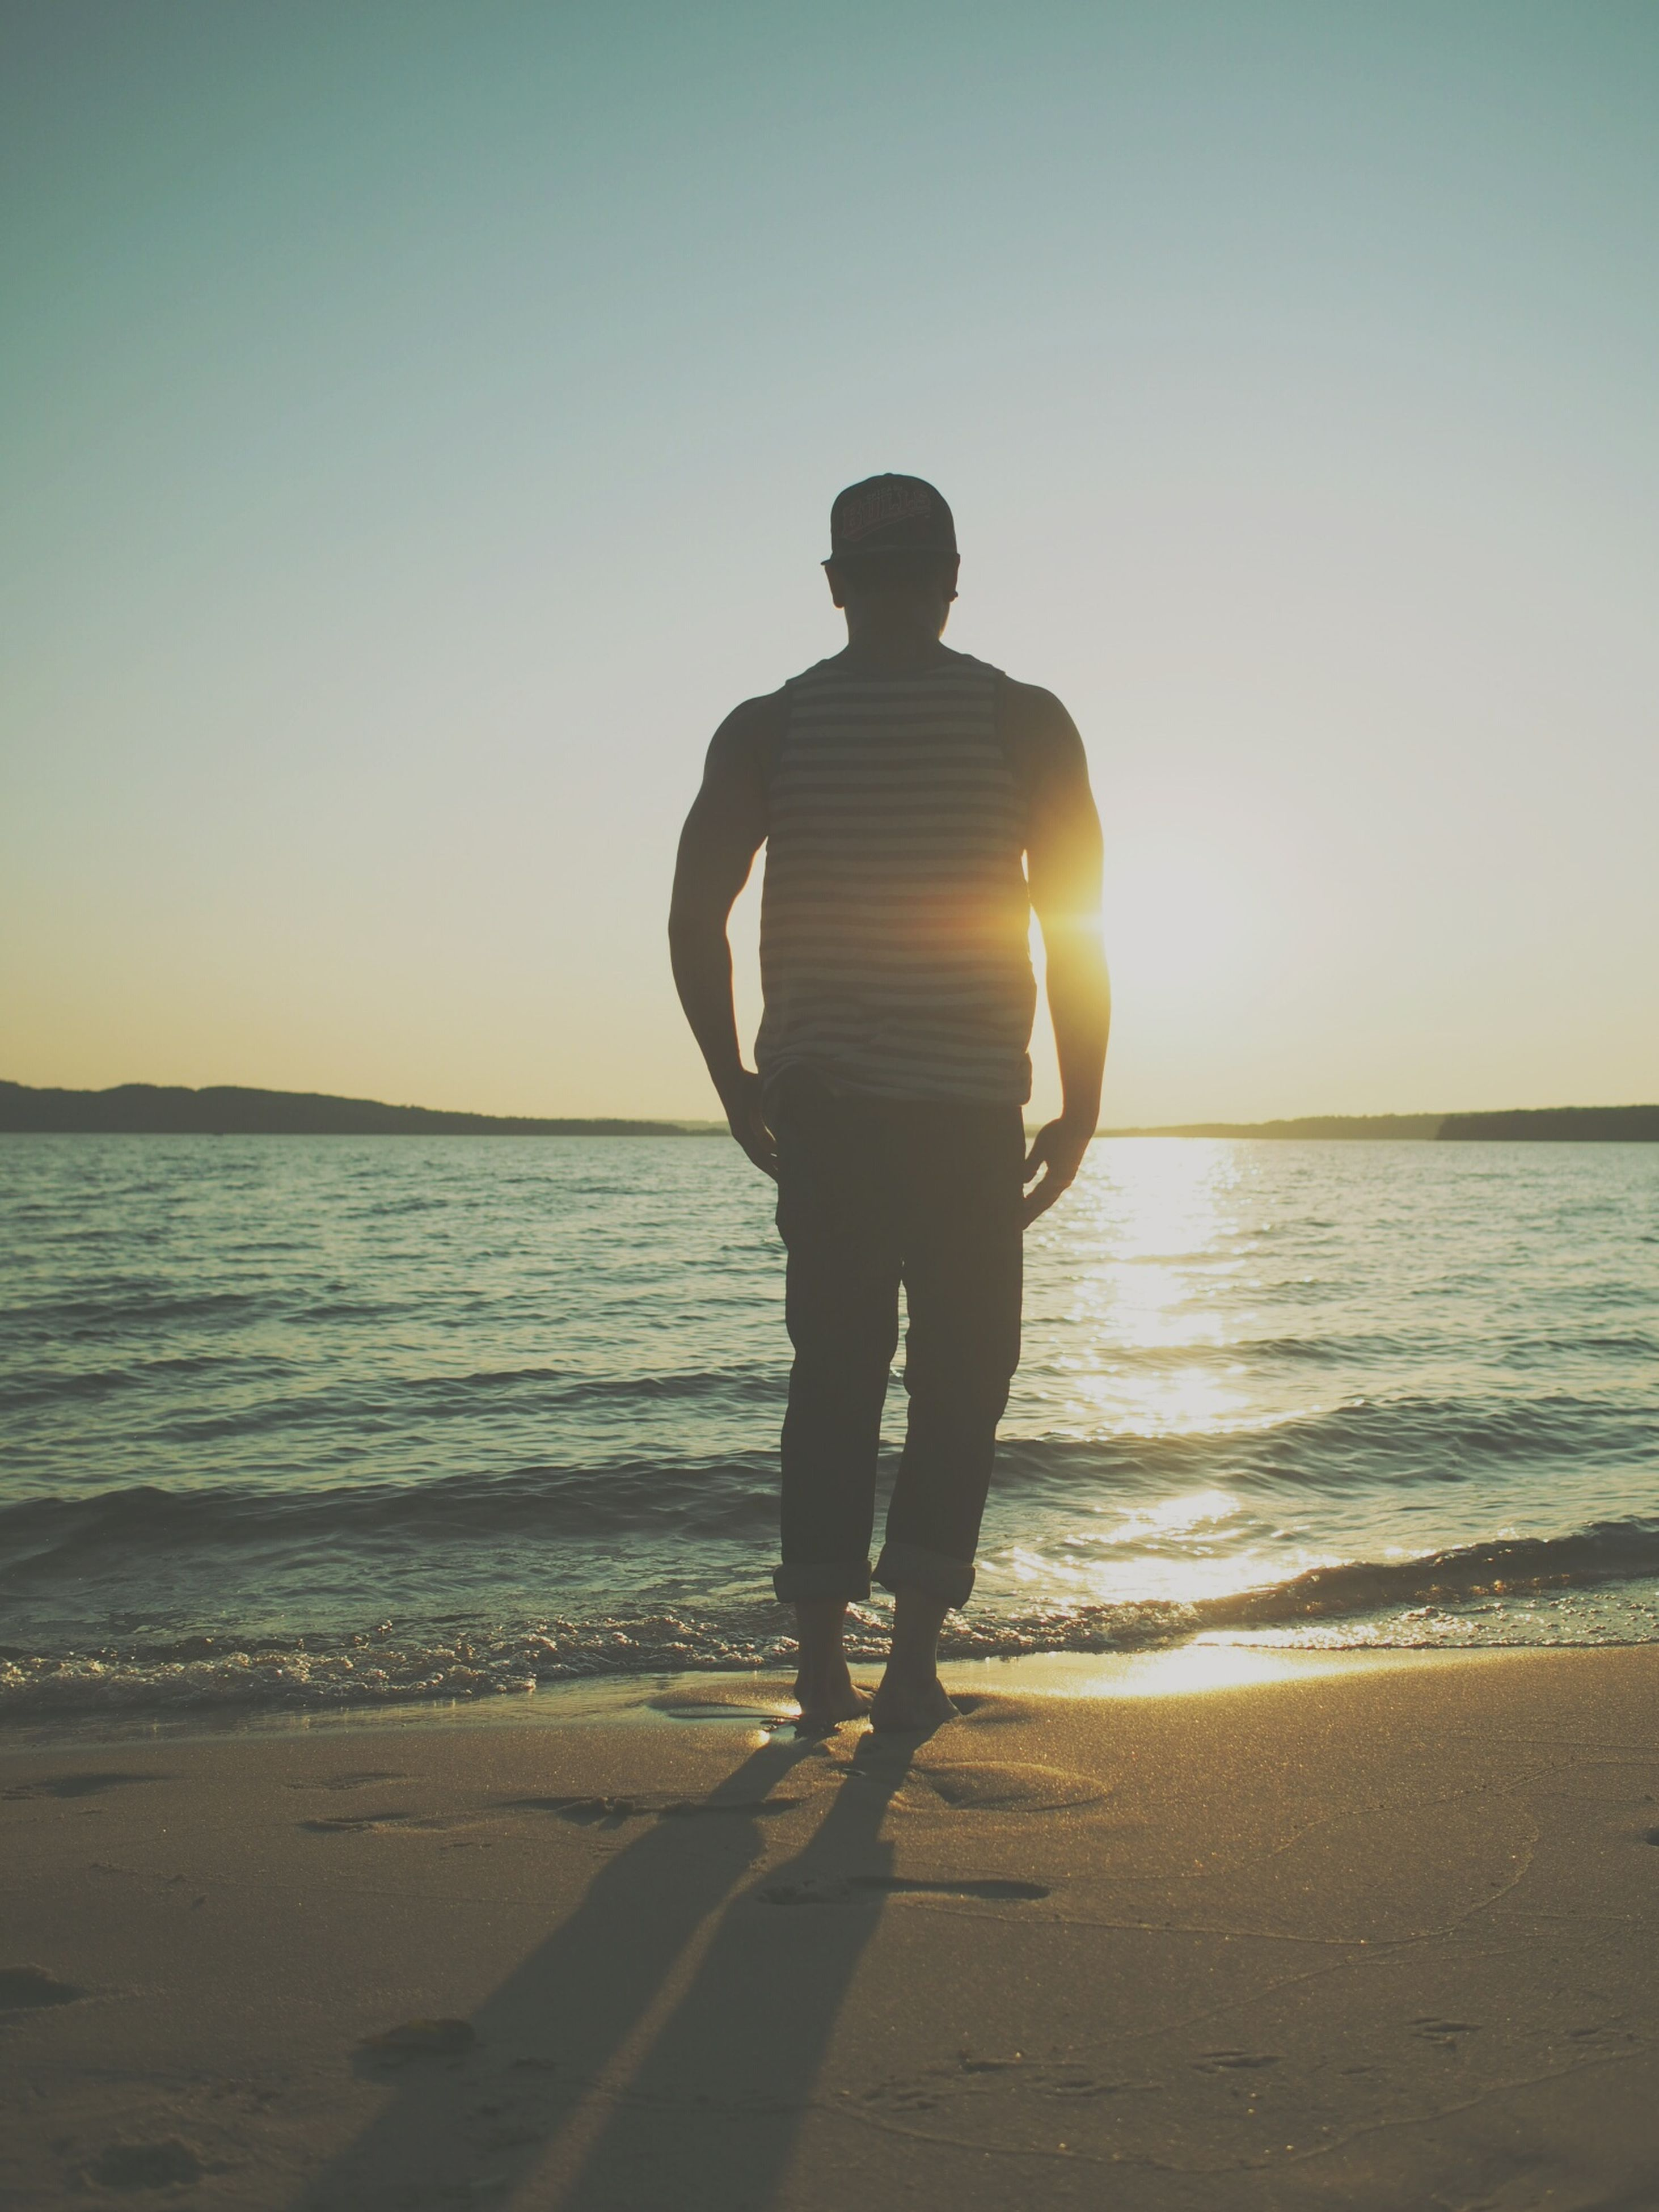 sea, sunset, horizon over water, beach, water, sun, shore, leisure activity, full length, silhouette, lifestyles, standing, clear sky, tranquility, rear view, sunlight, scenics, tranquil scene